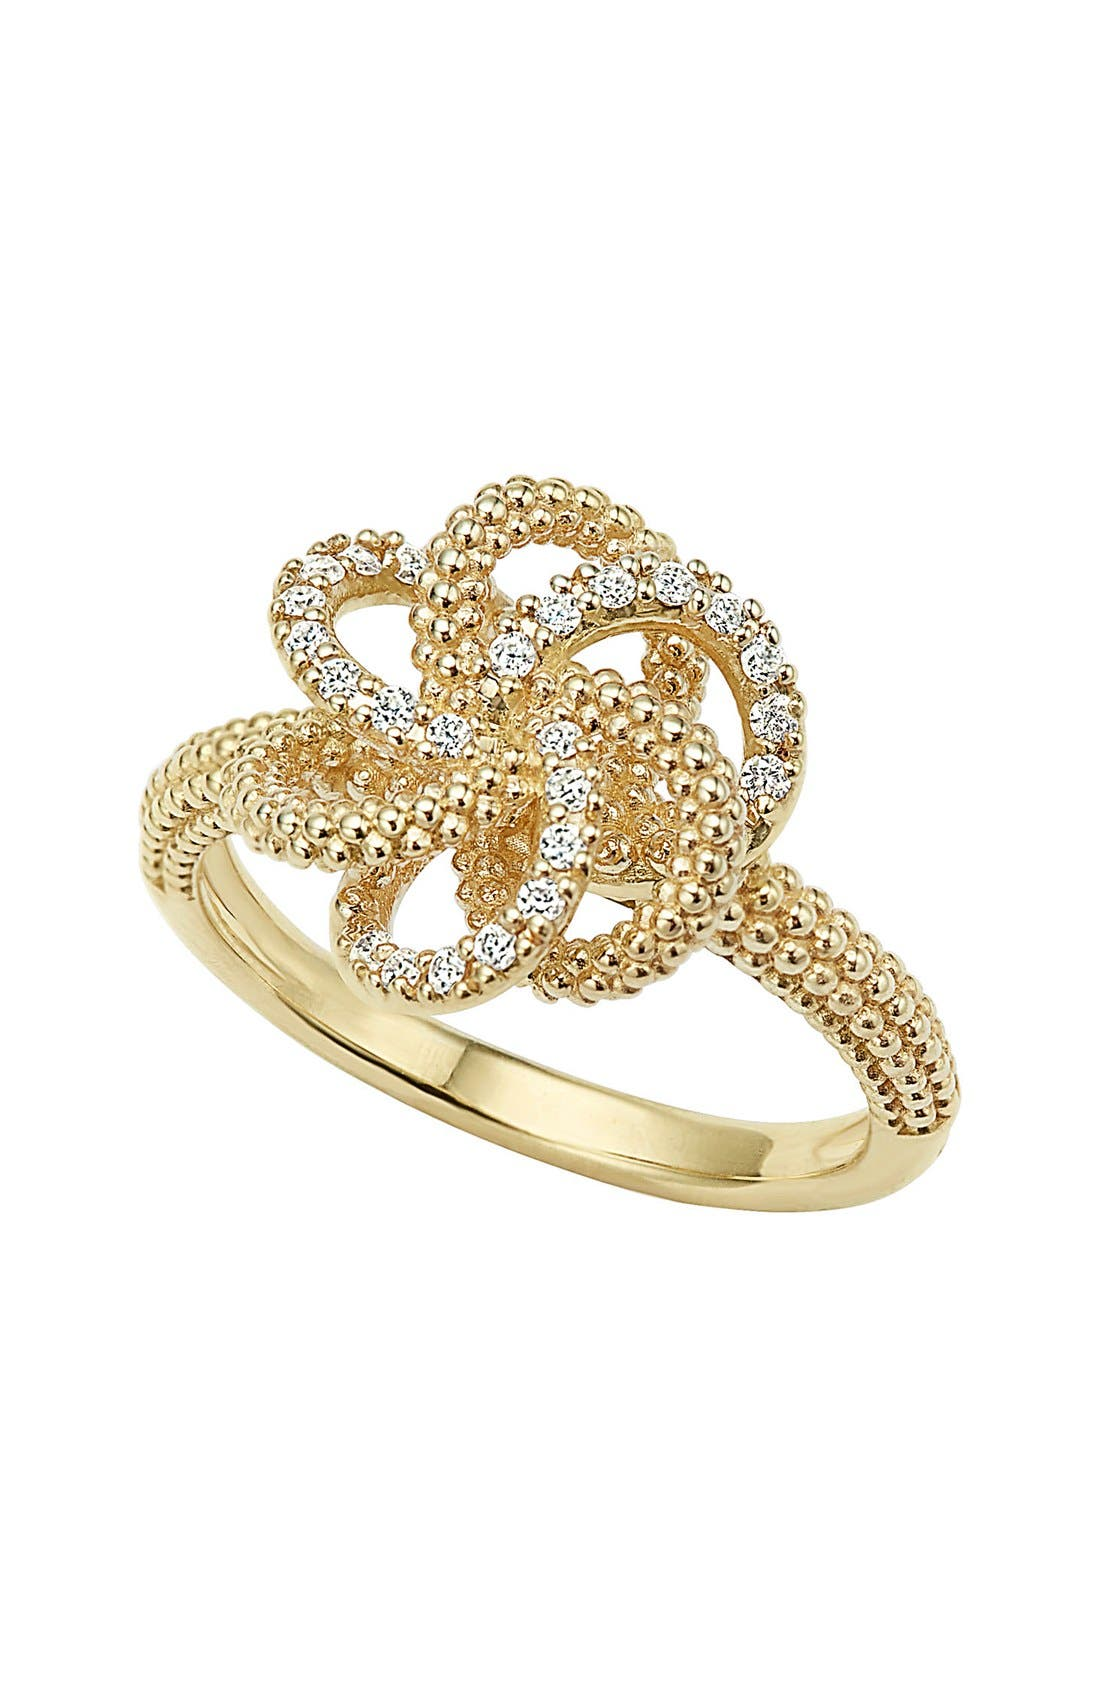 LAGOS 'Love Knot' Diamond Ring